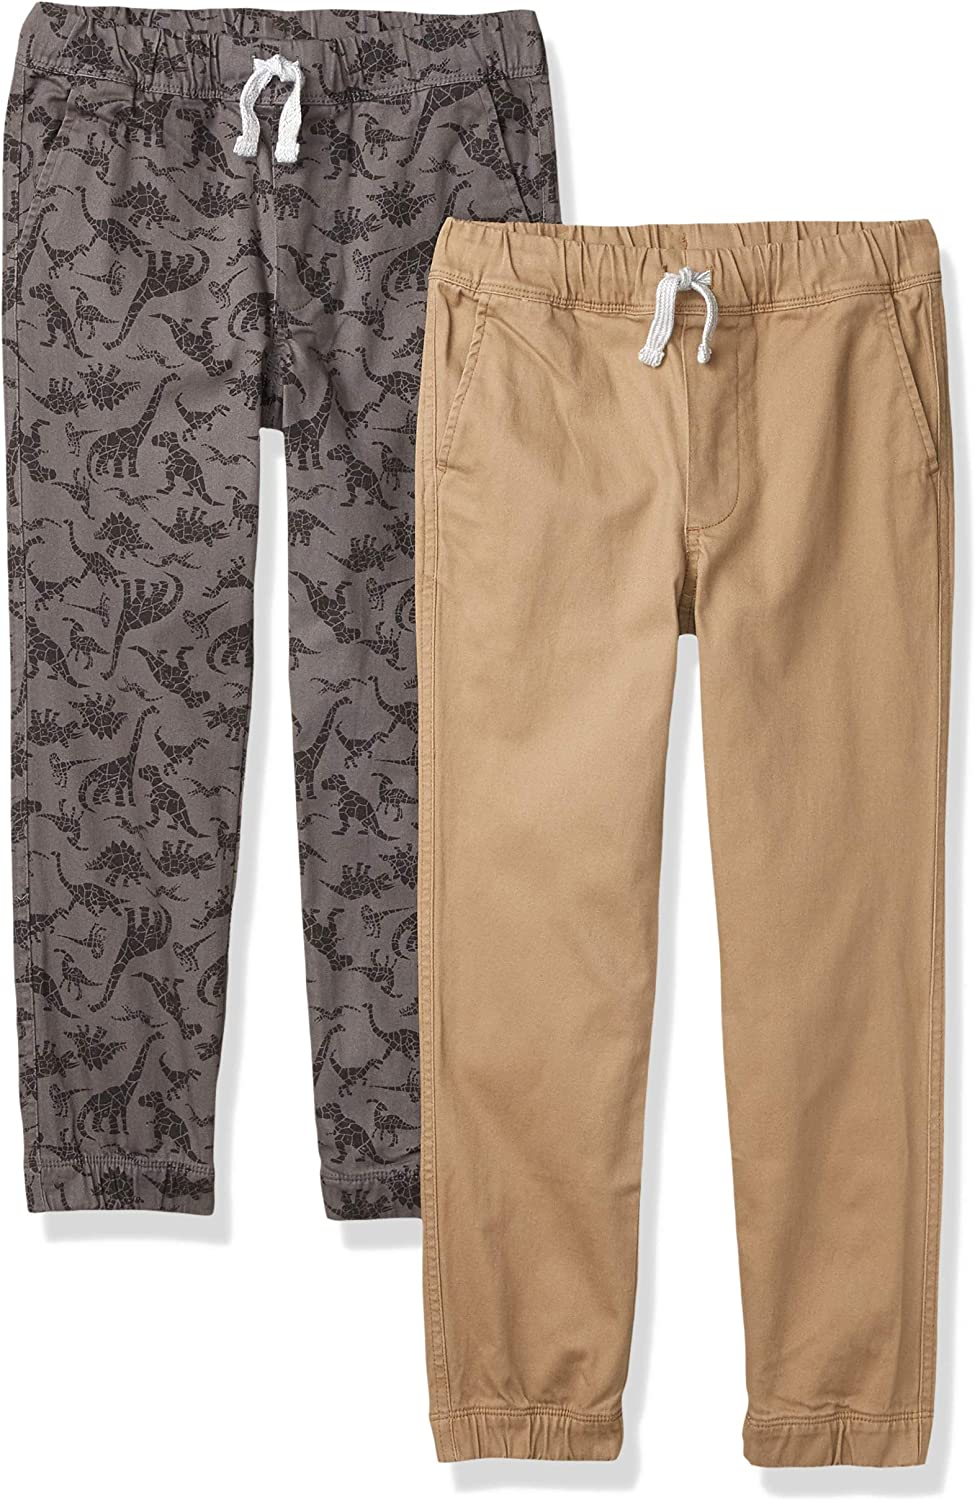 Amazon Essentials Boys' Pull-On 40% OFF Cheap Sale Pants Jogger Woven Max 60% OFF